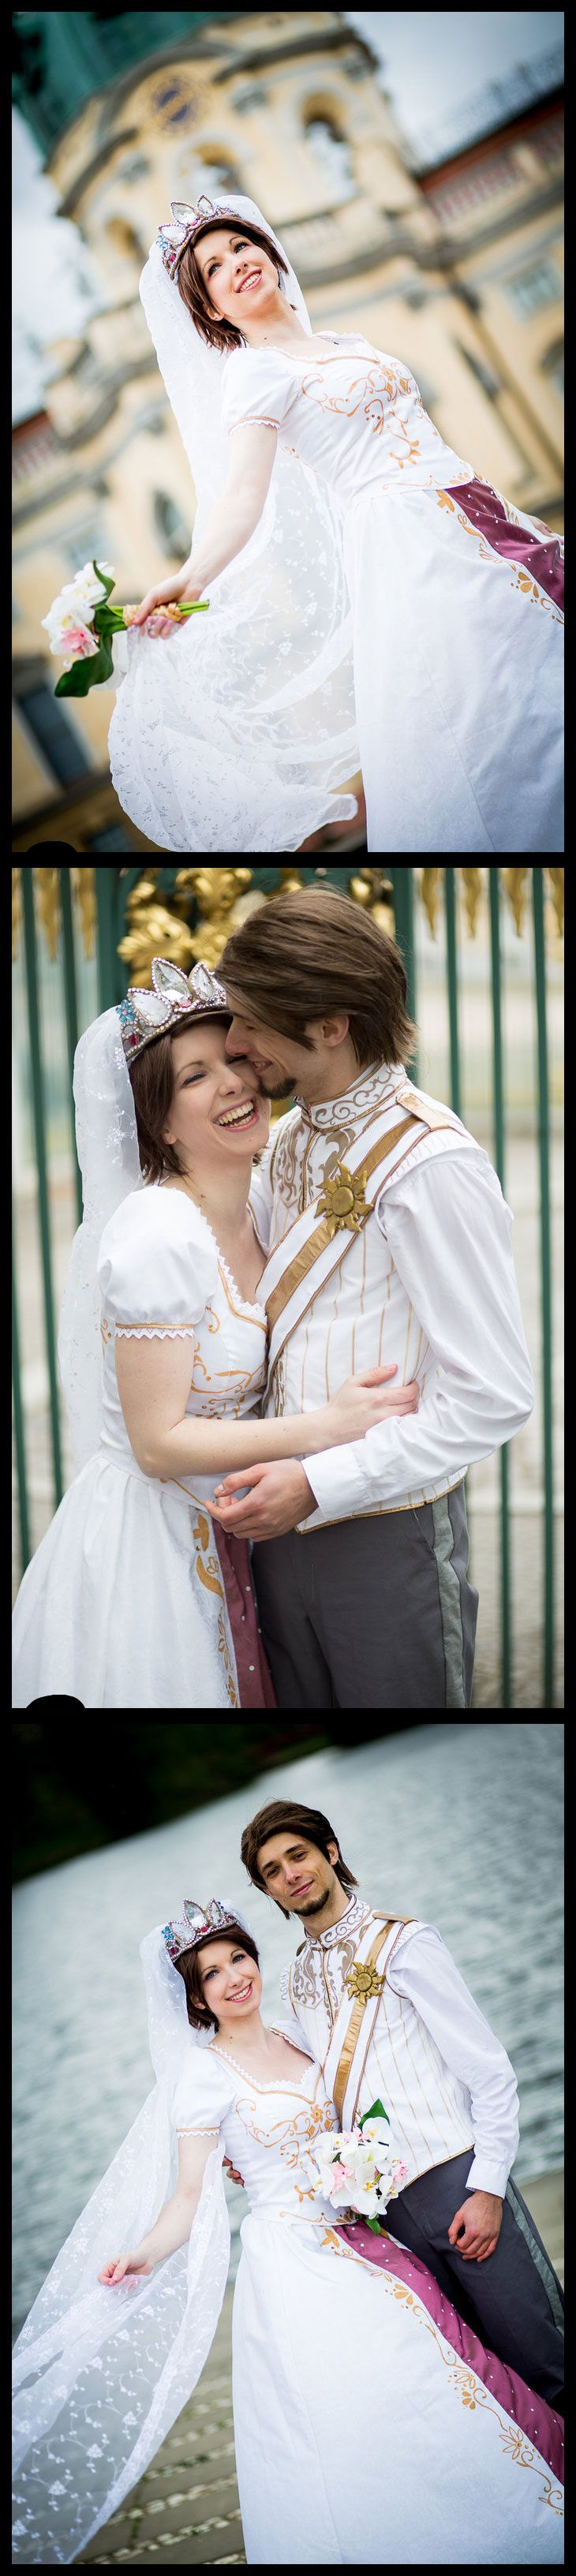 Location: Charlottenburg Castle, Berlin Fandom: Tangled Ever After (Disney) http://rayi-kun.deviantart.com/art/Happily-Ever-After-369254042